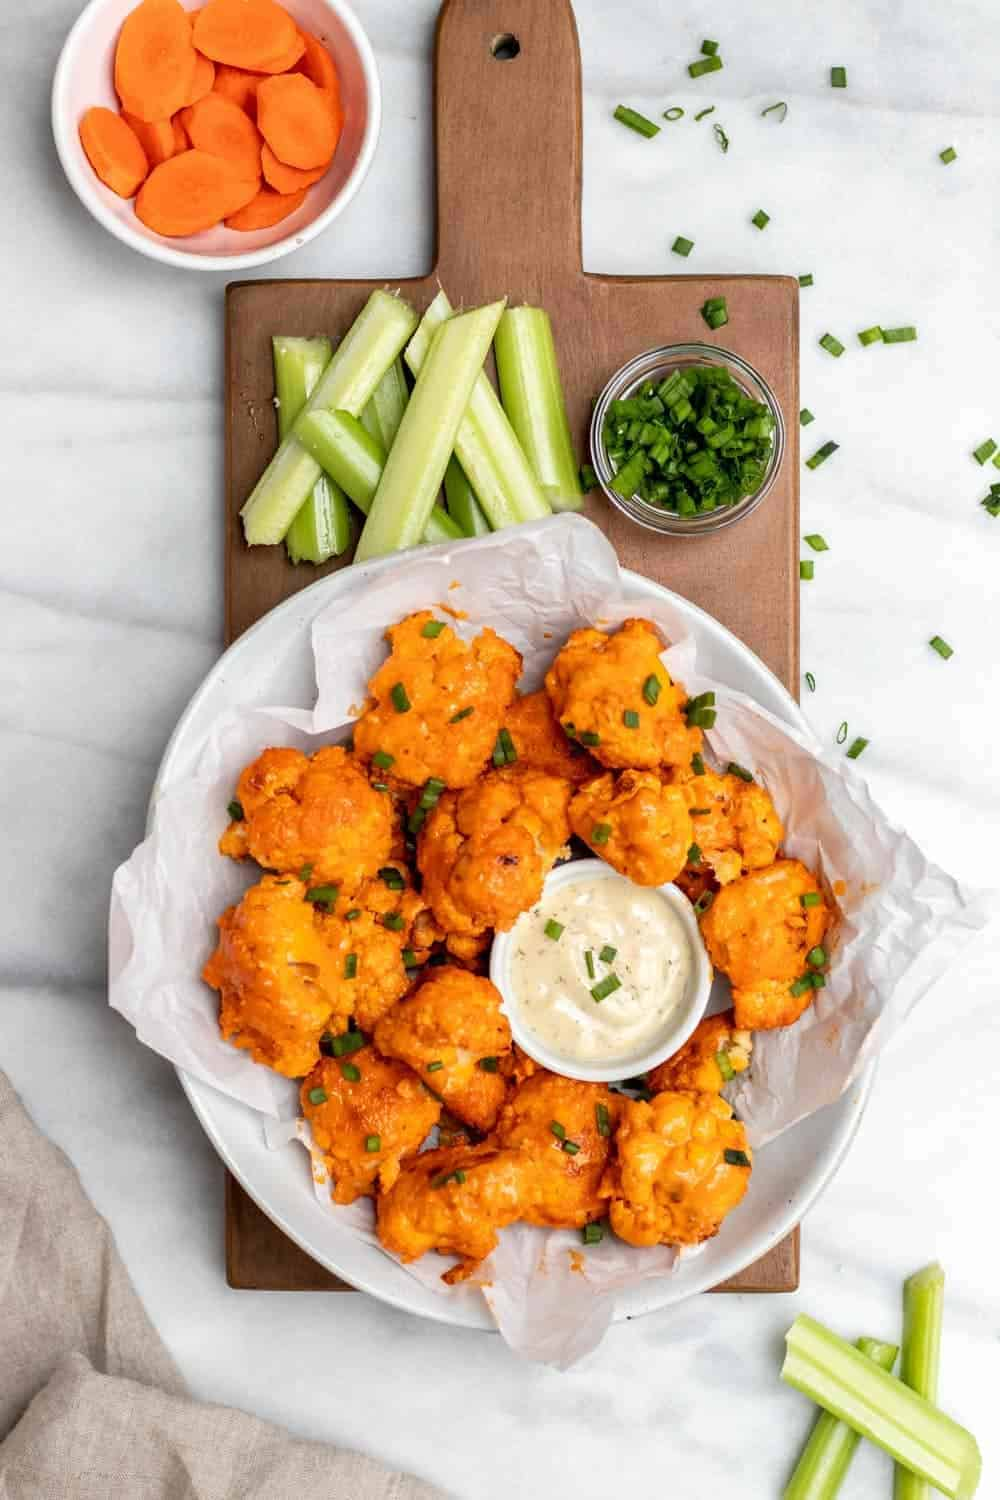 Final baked buffalo cauliflower on a wood board with celery and chives.